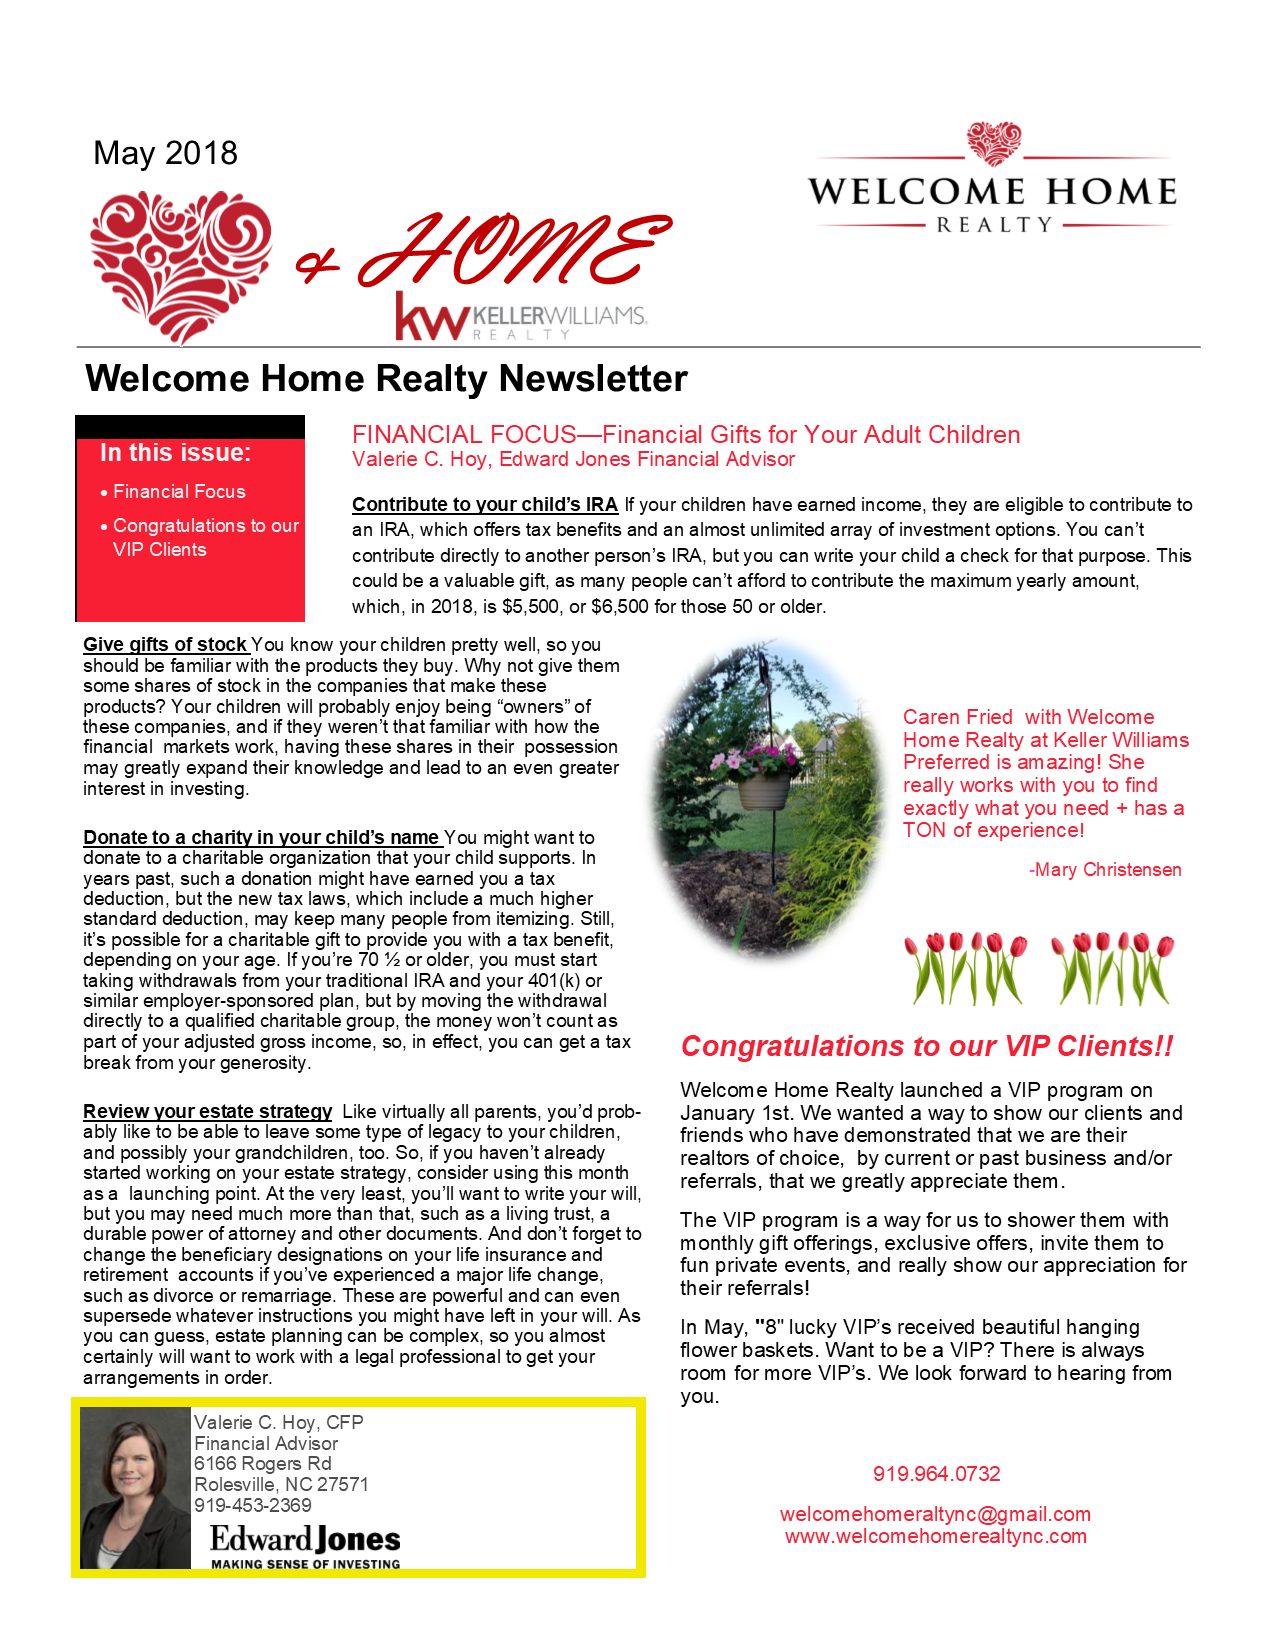 Heart & Home May 2018 2